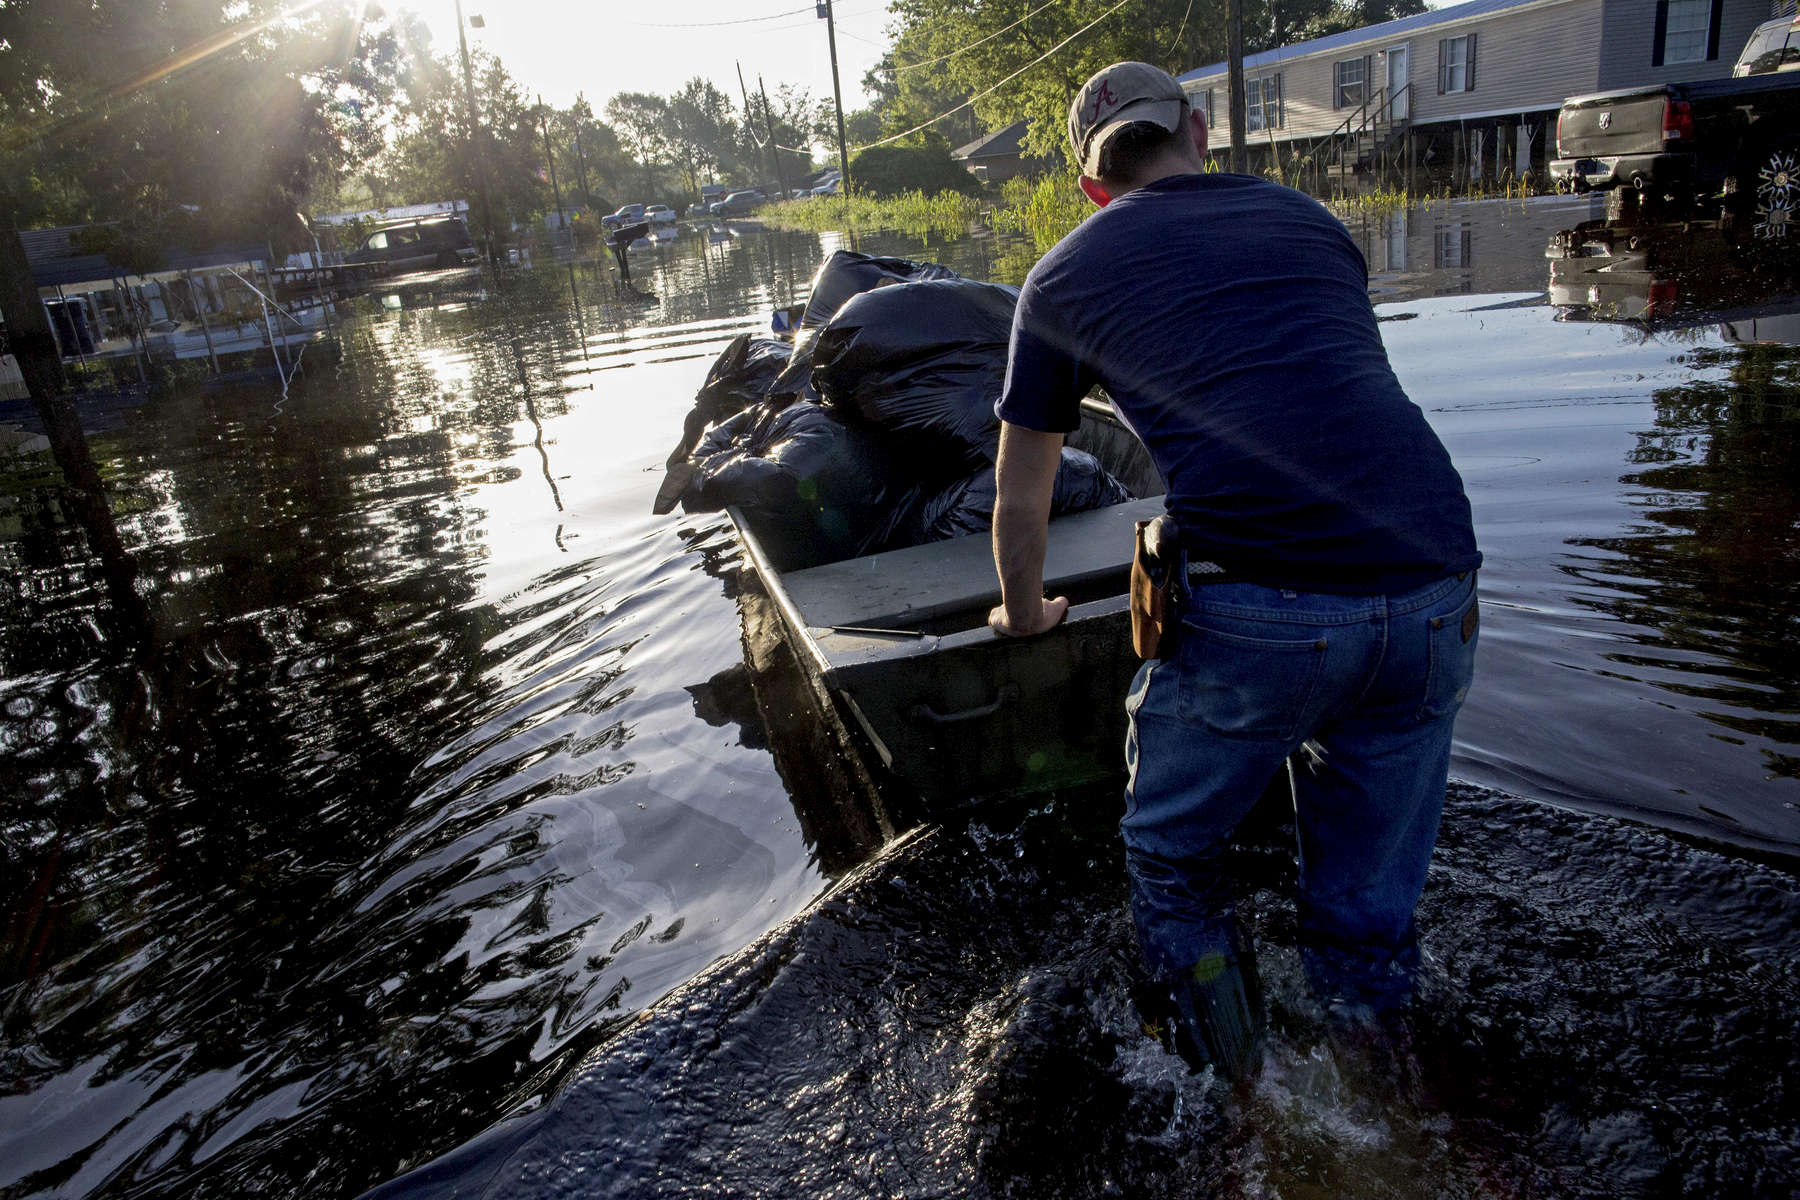 Daniel Stover, 17, moves a boat of personal belongings from a friend's flooded home in Sorrento, La. USA, Saturday, Aug. 20, 2016. The American Red Cross described the flood as {quote}the largest natural disaster to hit the United States since Superstorm Sandy.{quote} (AP Photo/Max Becherer)